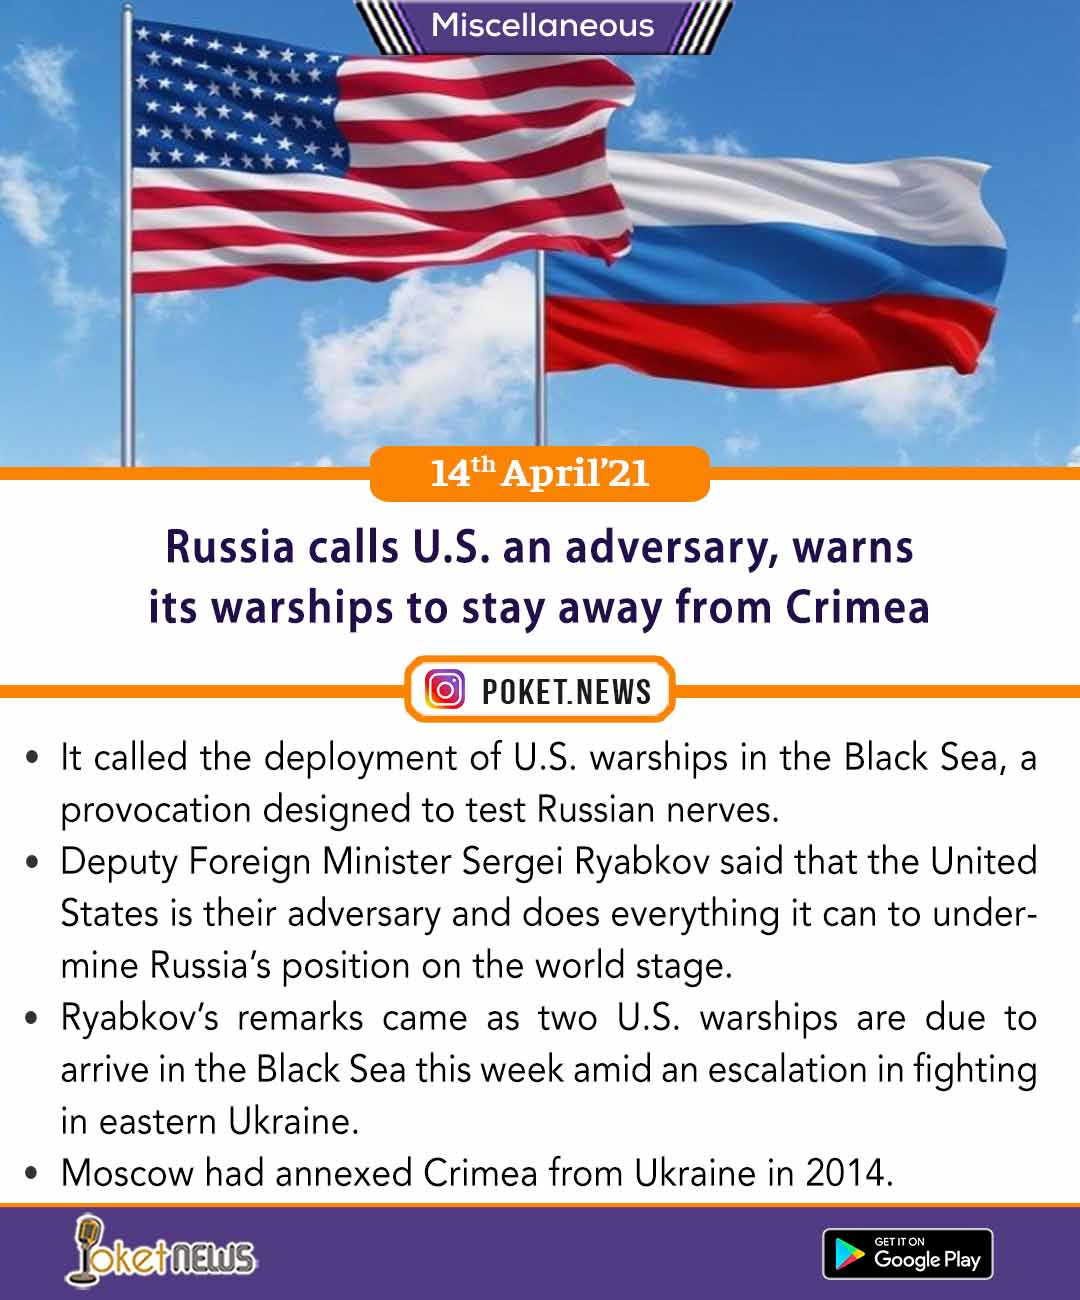 Russia calls U.S. an adversary, warns its warships to stay away from Crimea